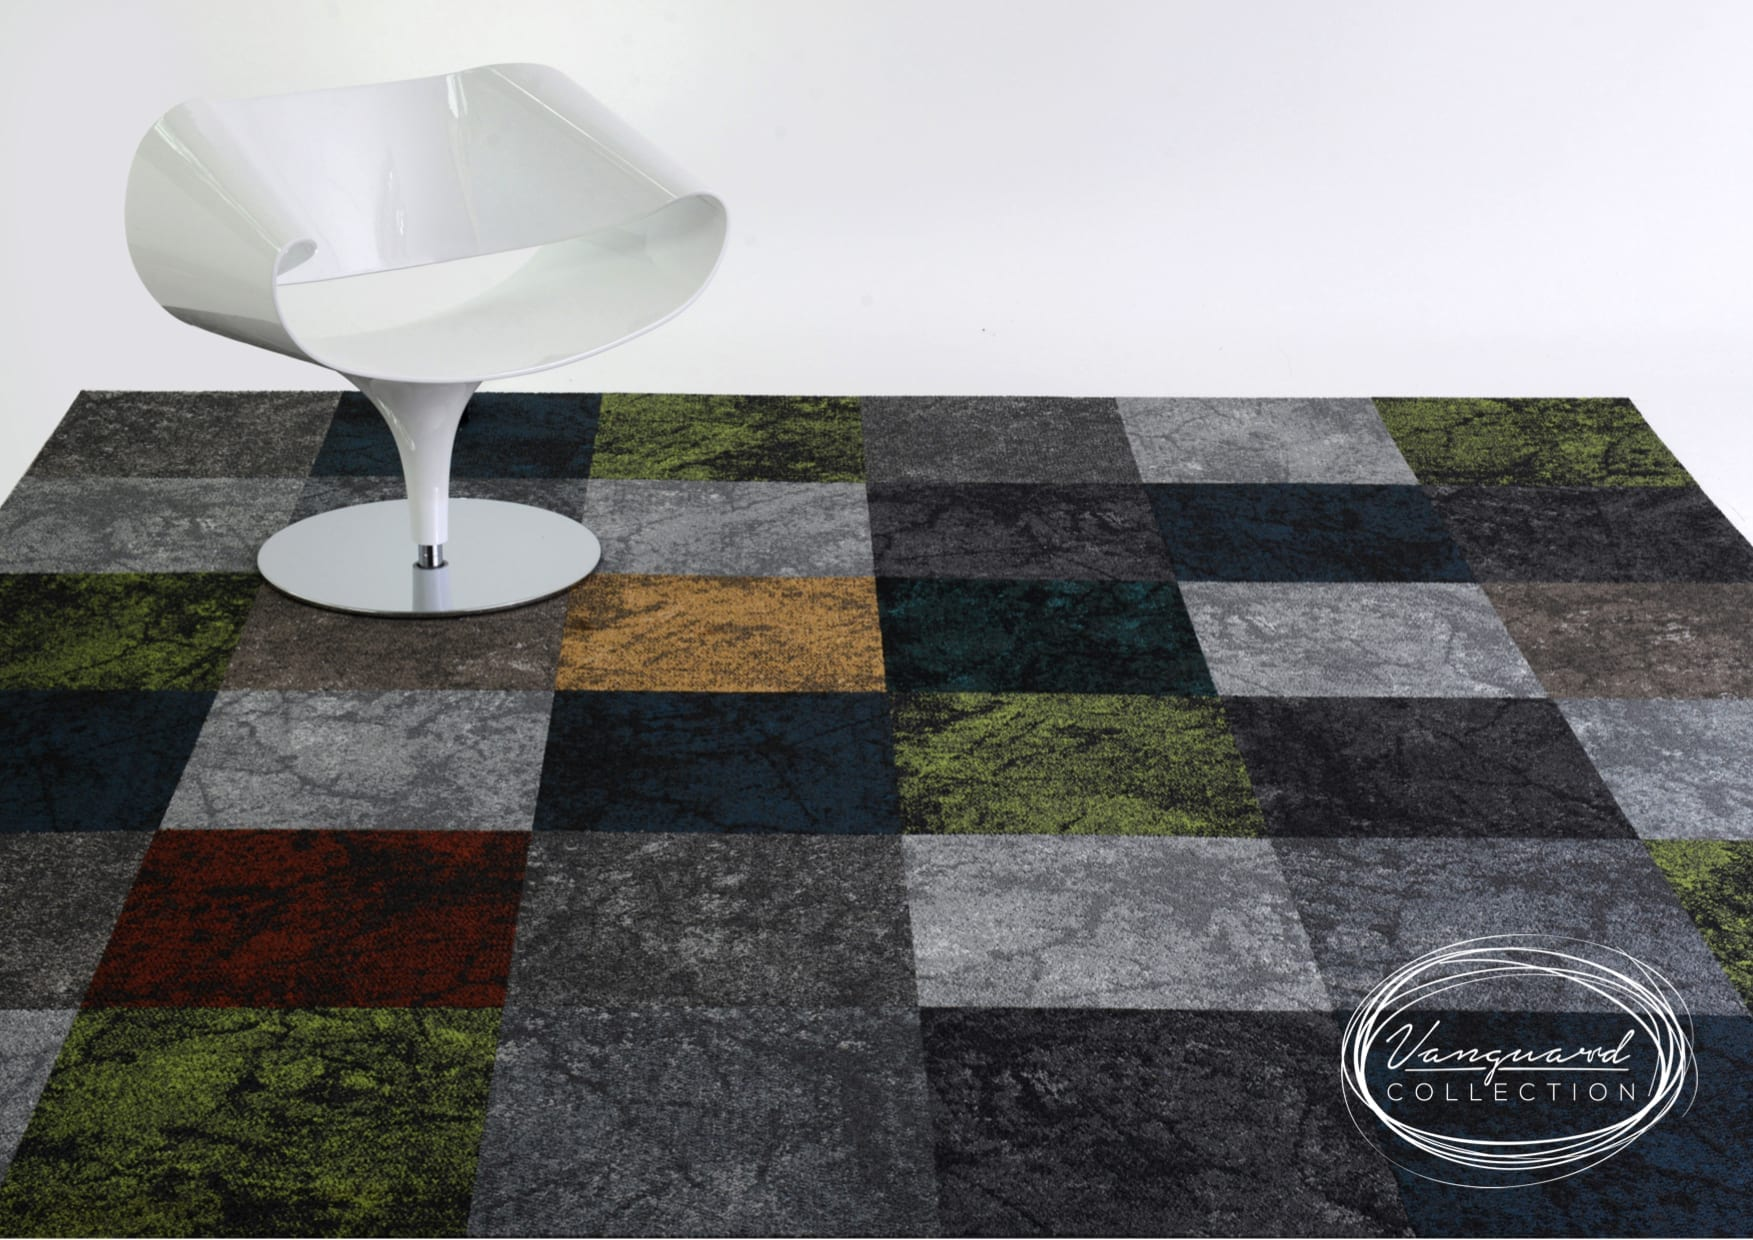 TWO NEW CARPET TILES IN FAST-GROWING VANGUARD COLLECTION